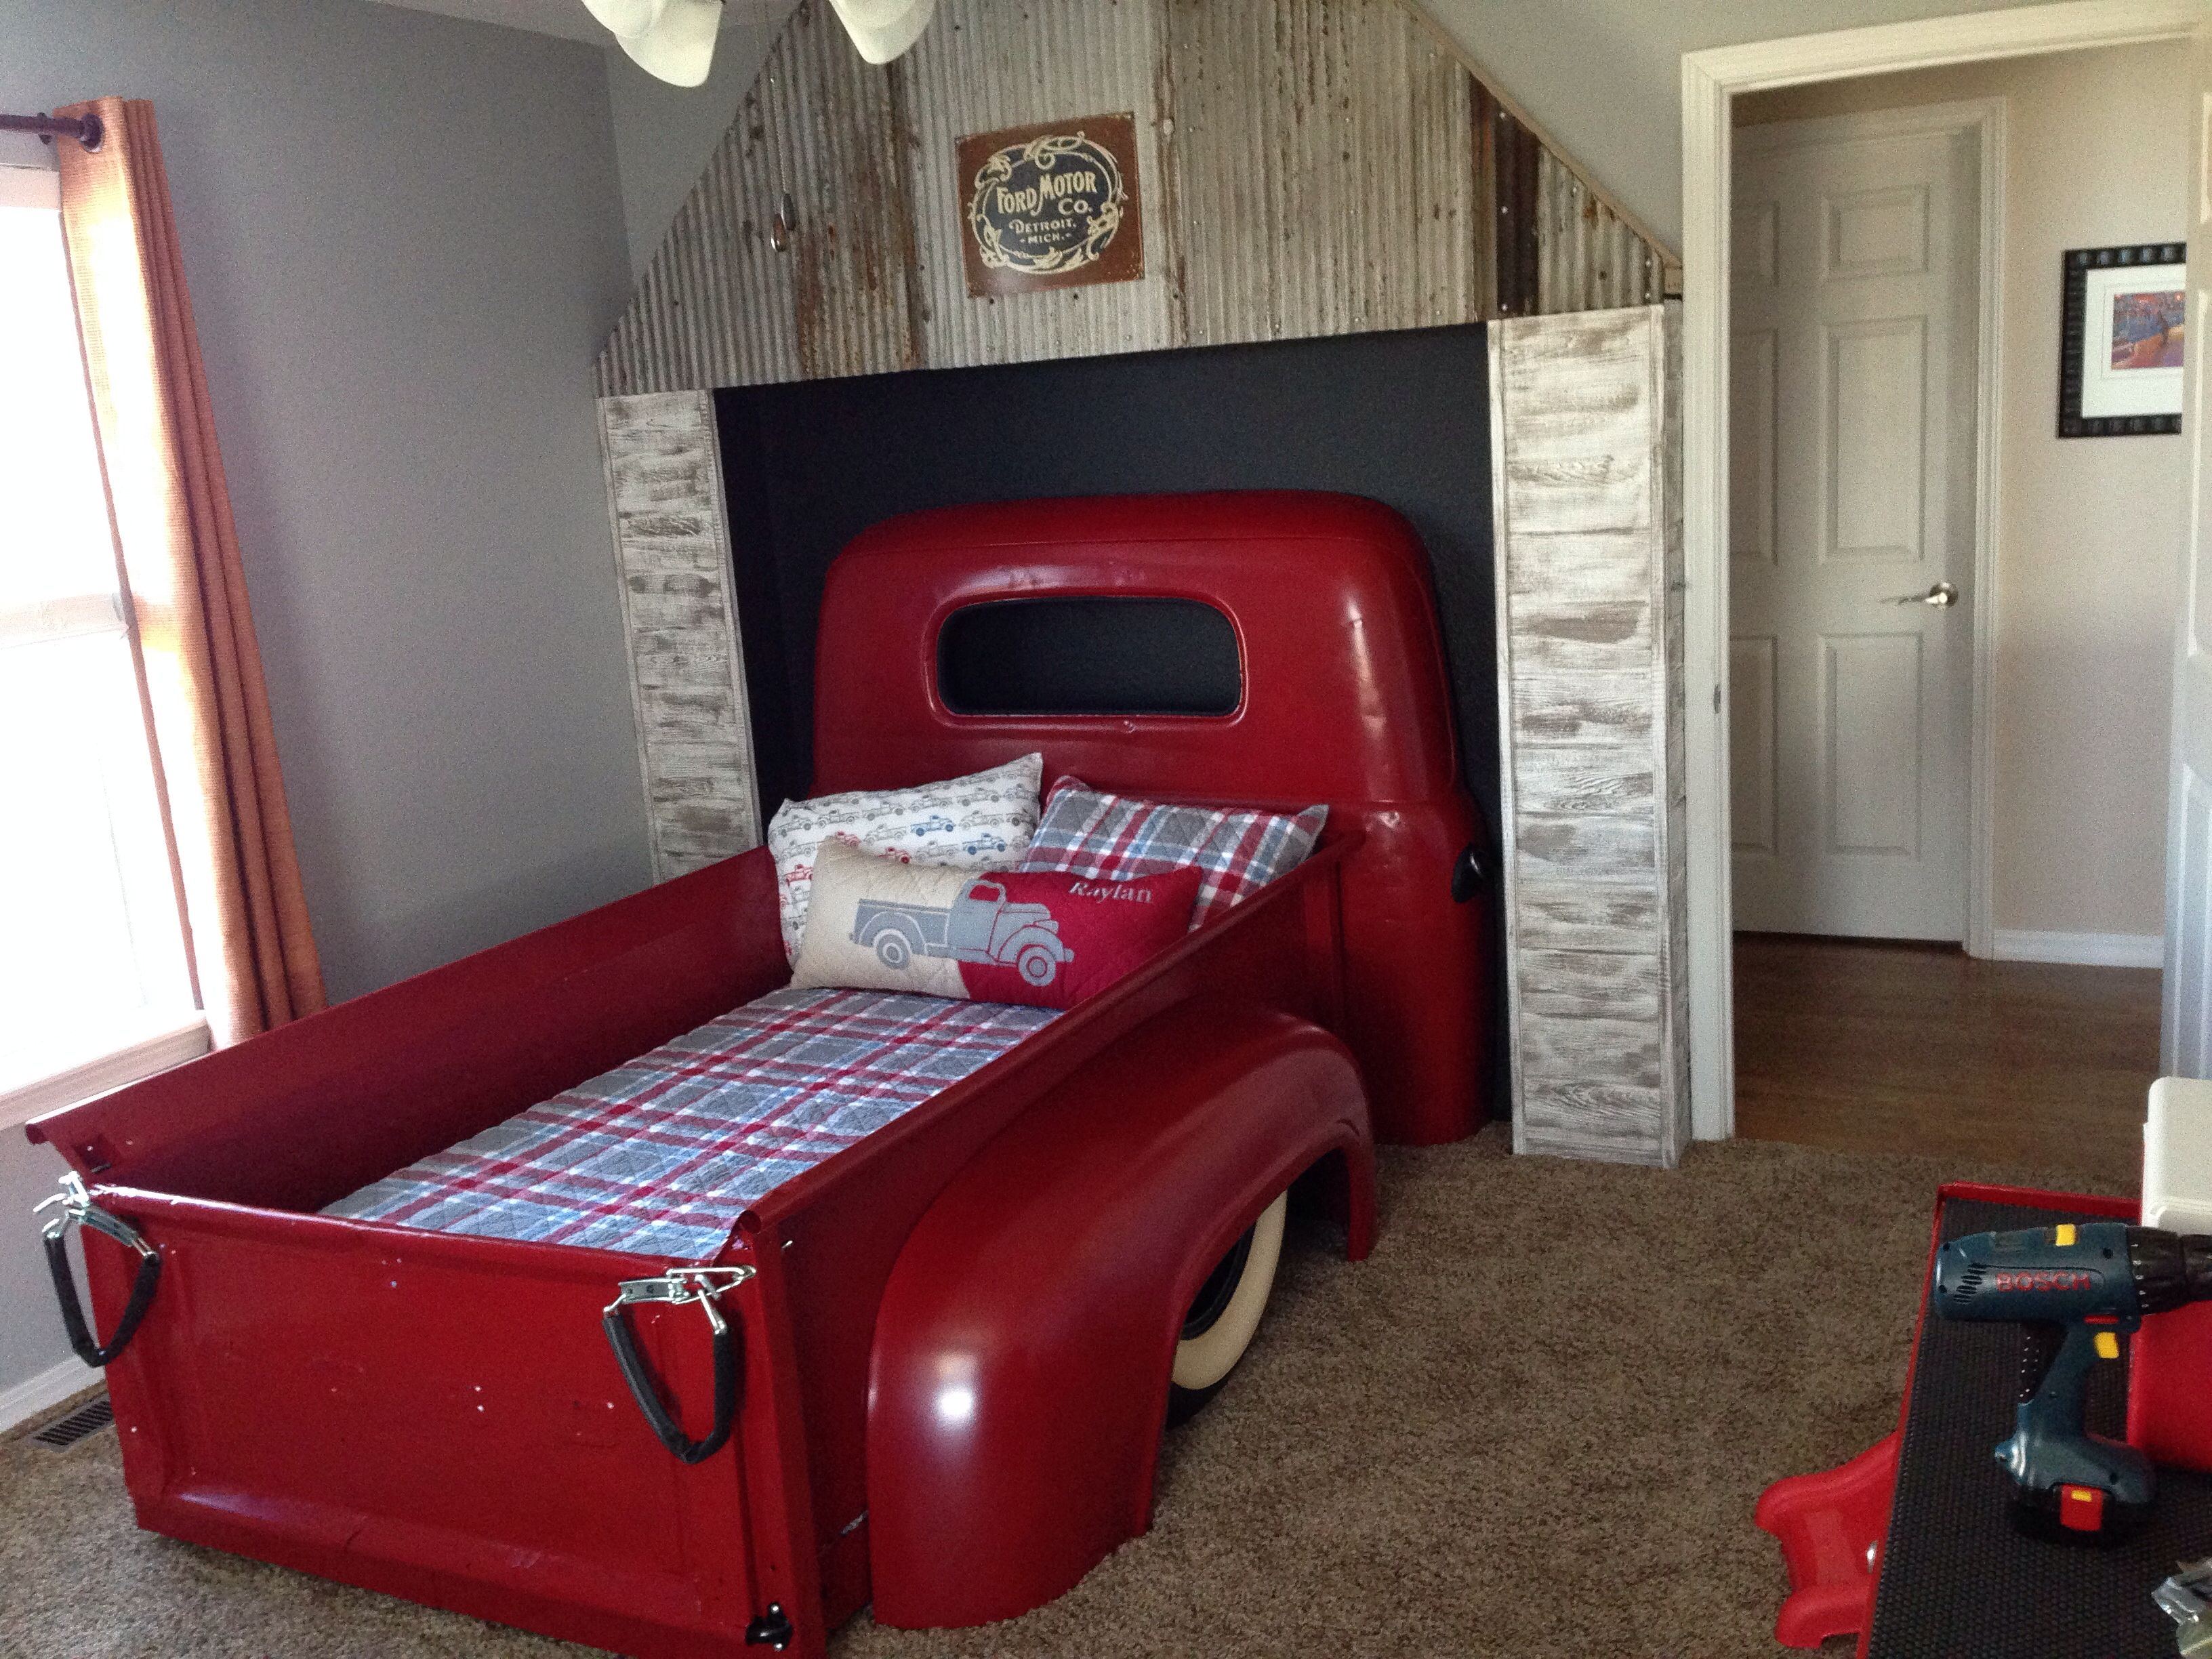 kids room fascinating bedroom idea with amazing classic car bed for kids desk fur rug high gloss finish car bed library picture frame pouffe red quilt wall